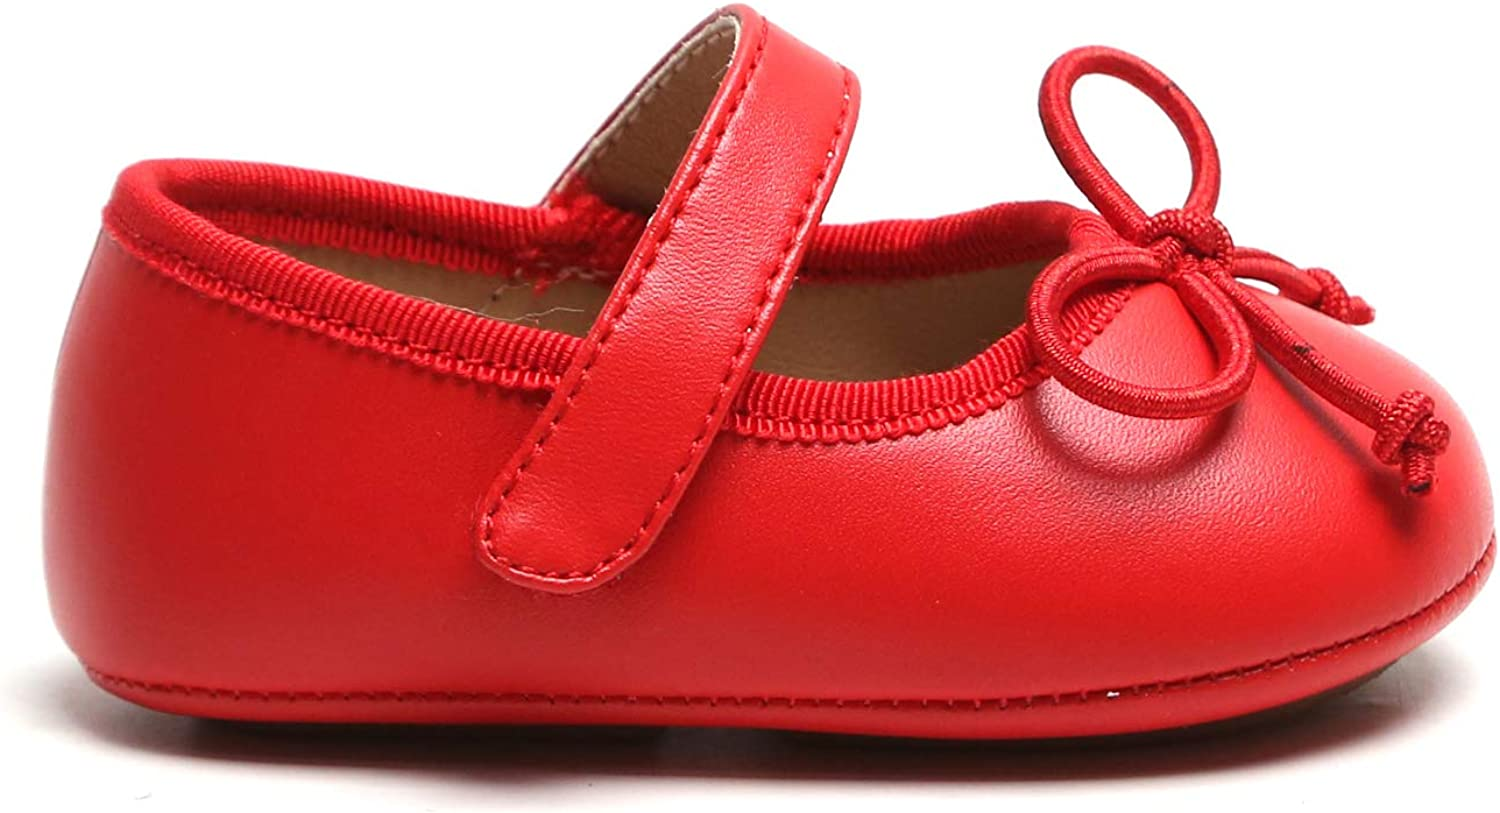 Toddler//Infant Baby Girls Slip-on Soft Sole Pre-Walkiers Flats Dress Shoes